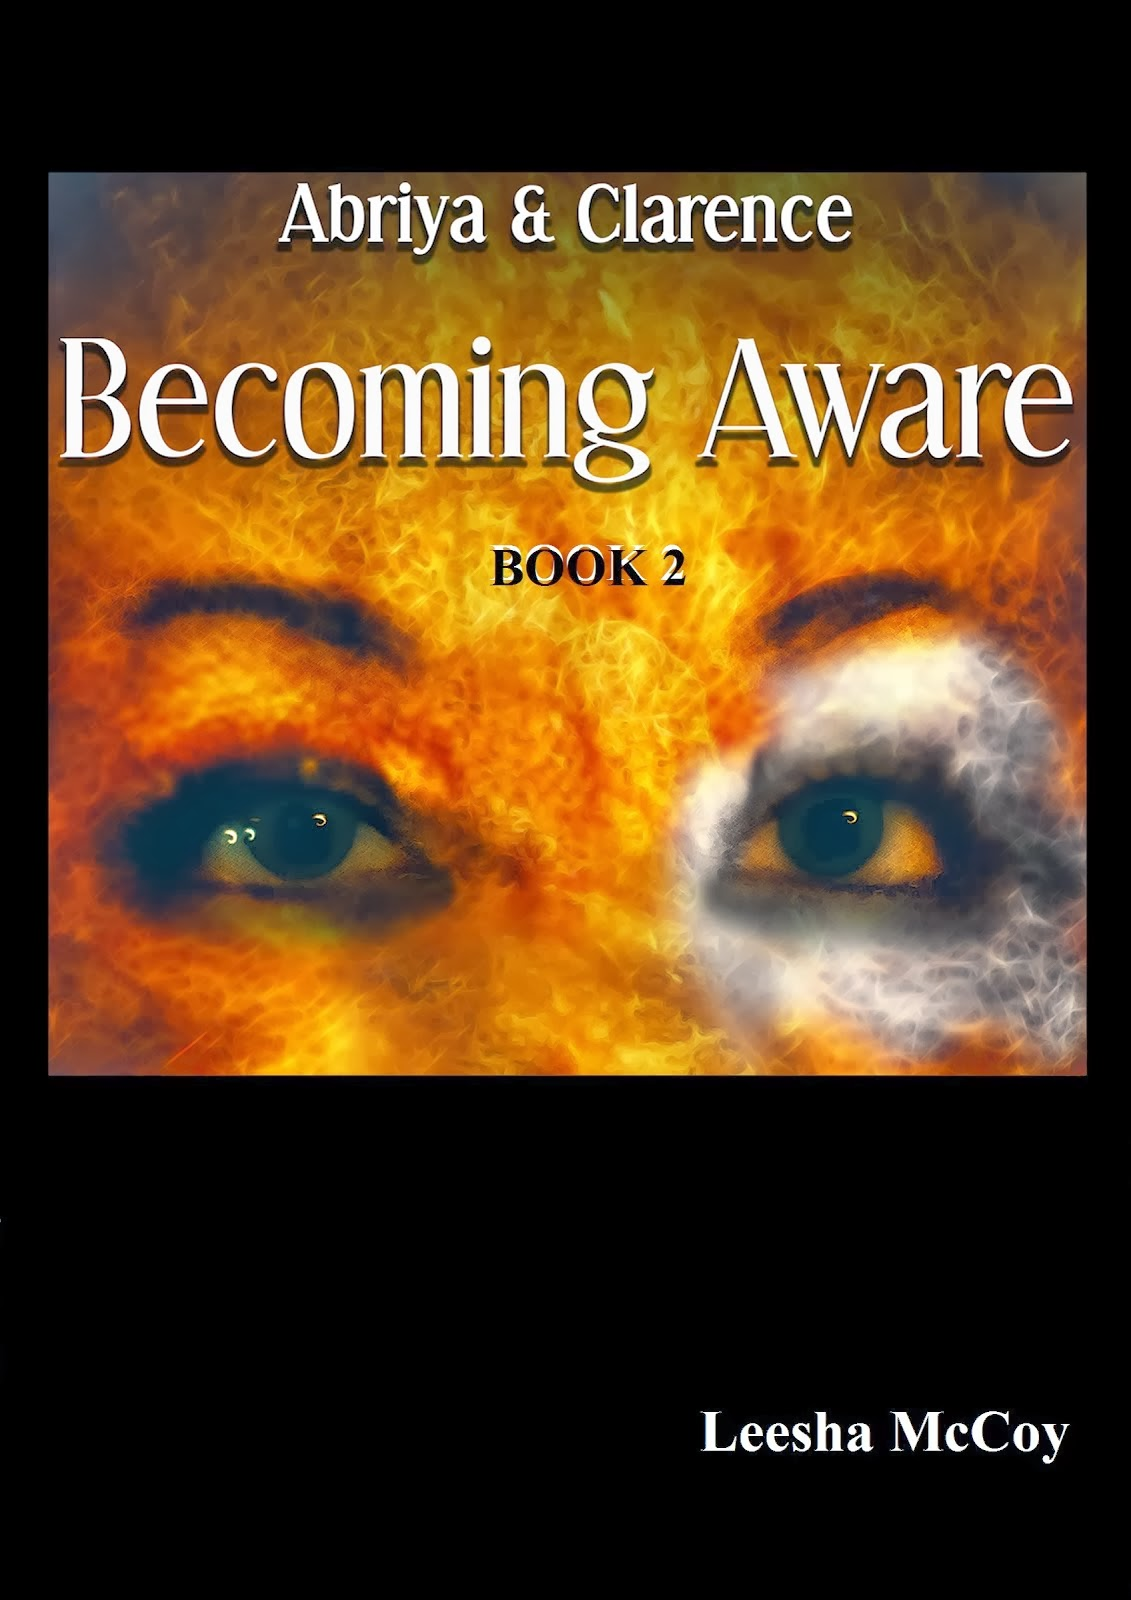 Becoming Aware Book 2